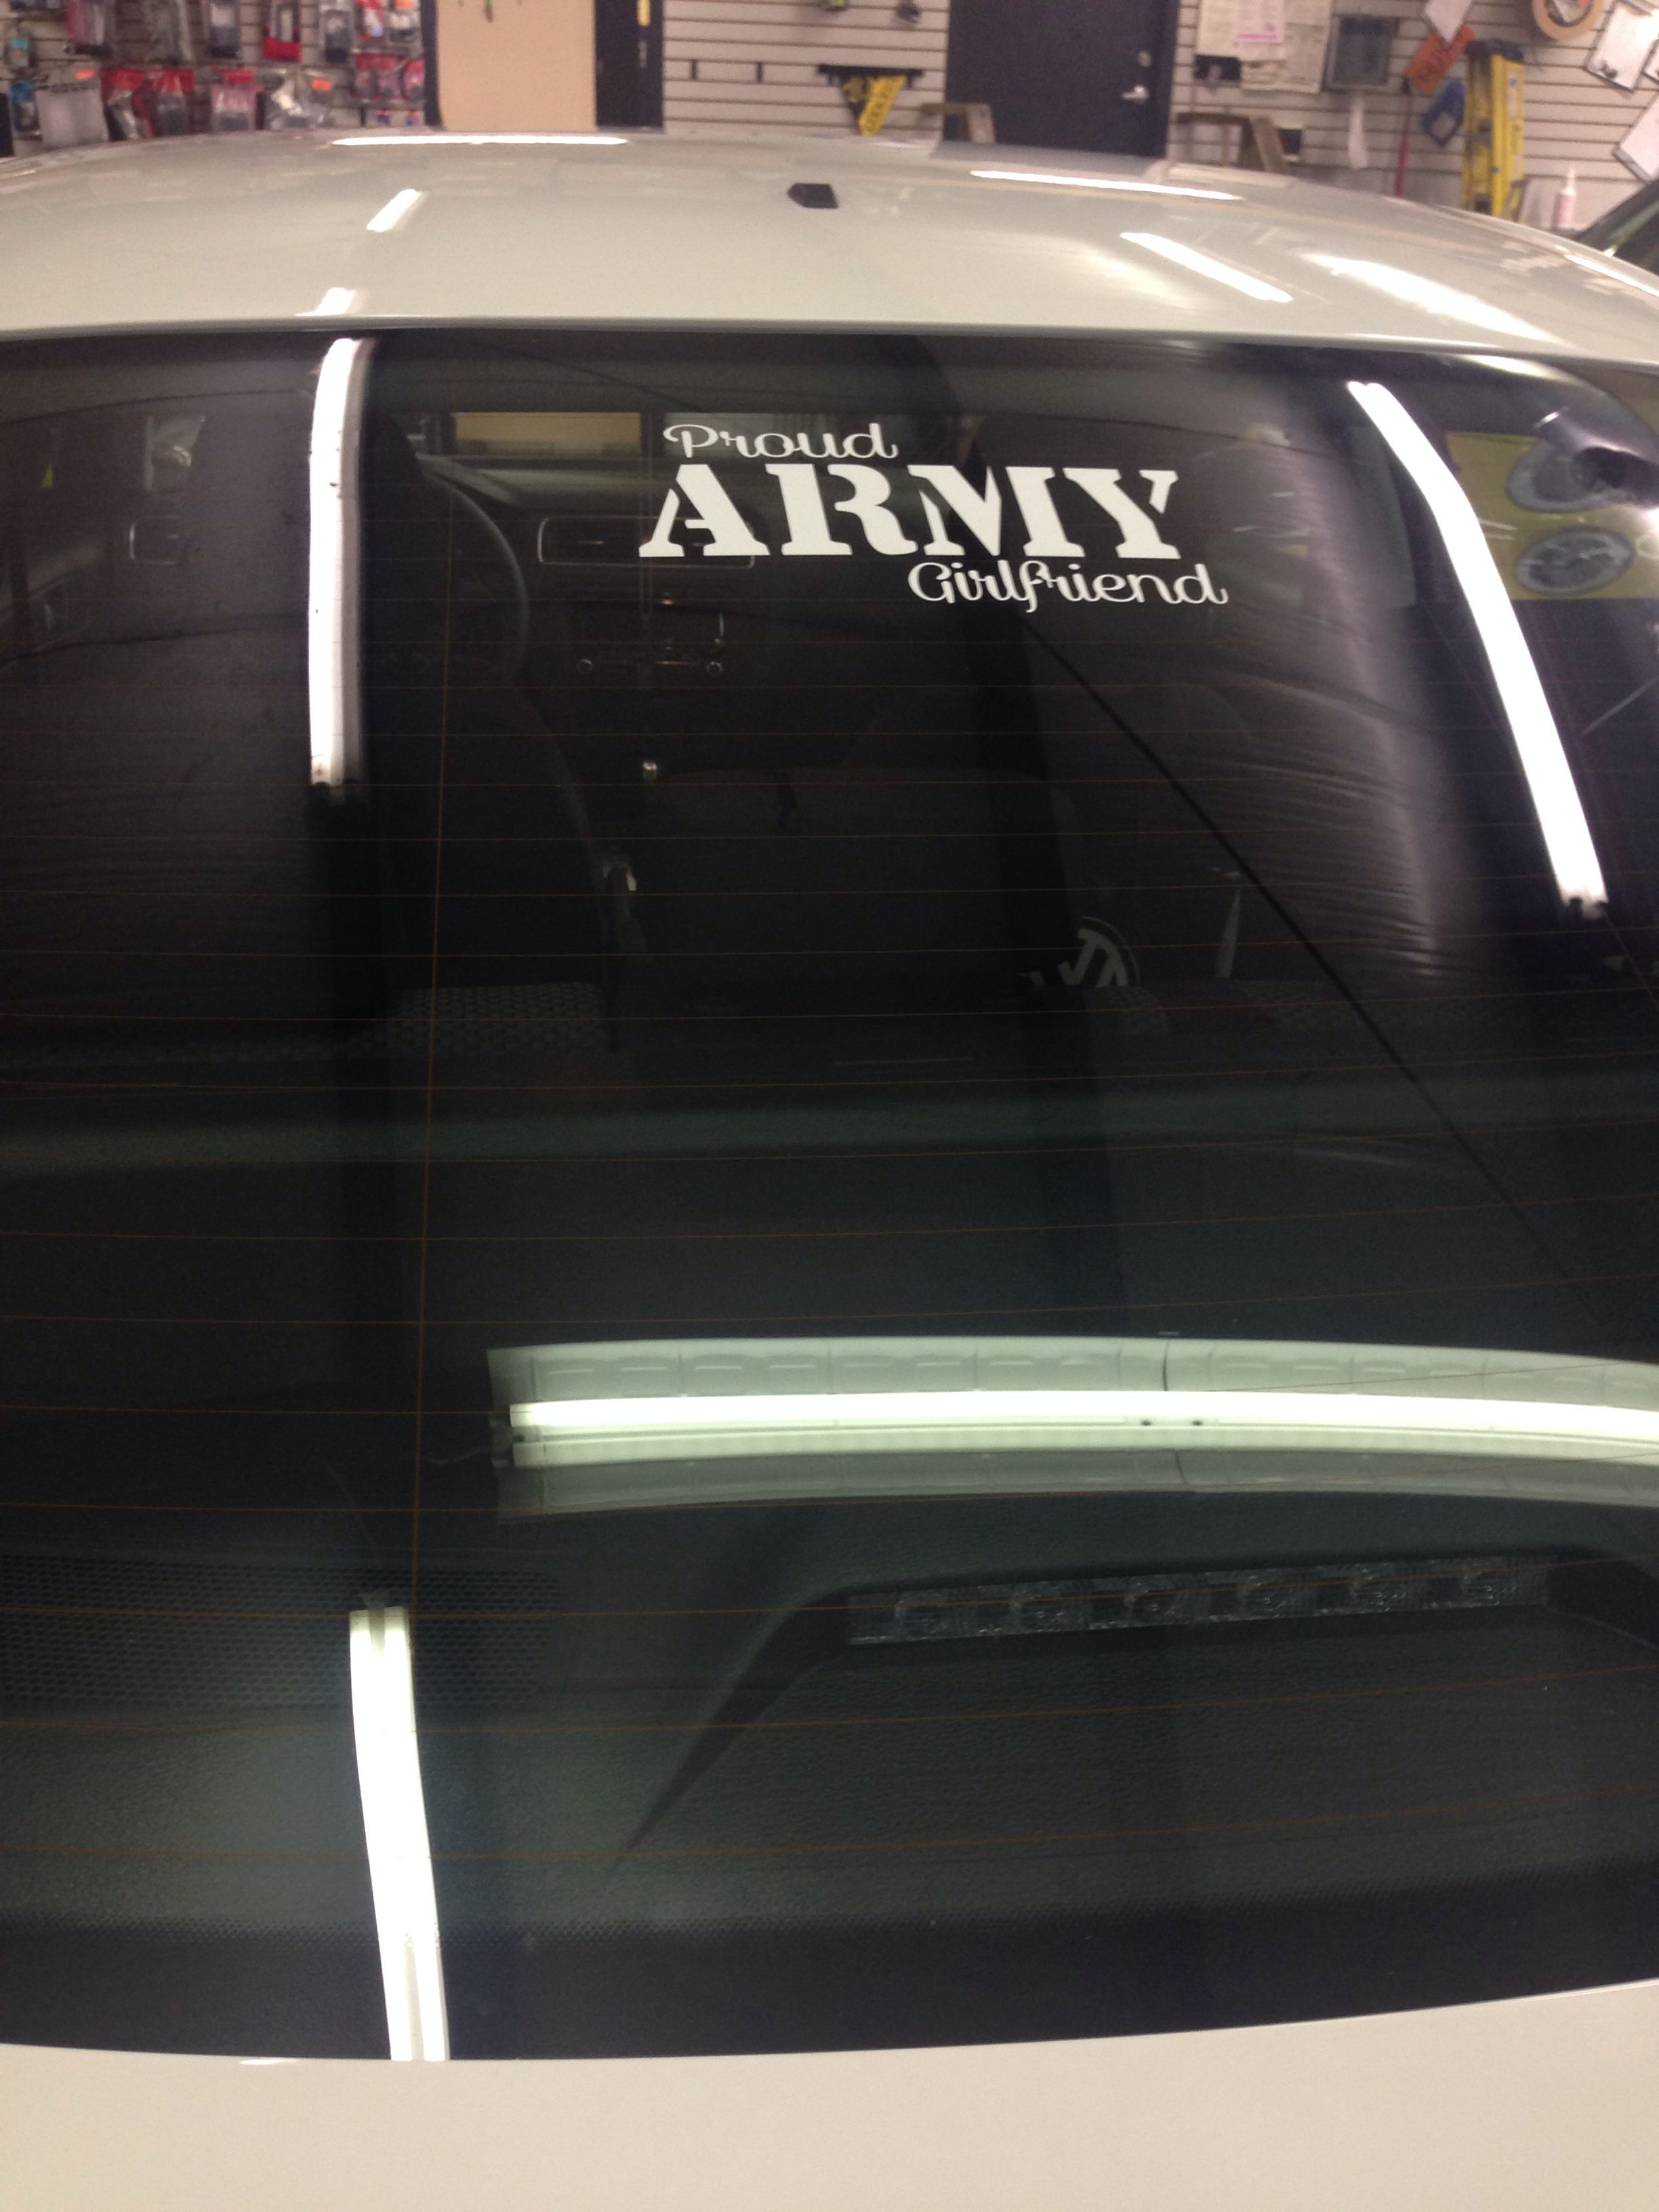 Proud army girlfriend decal!